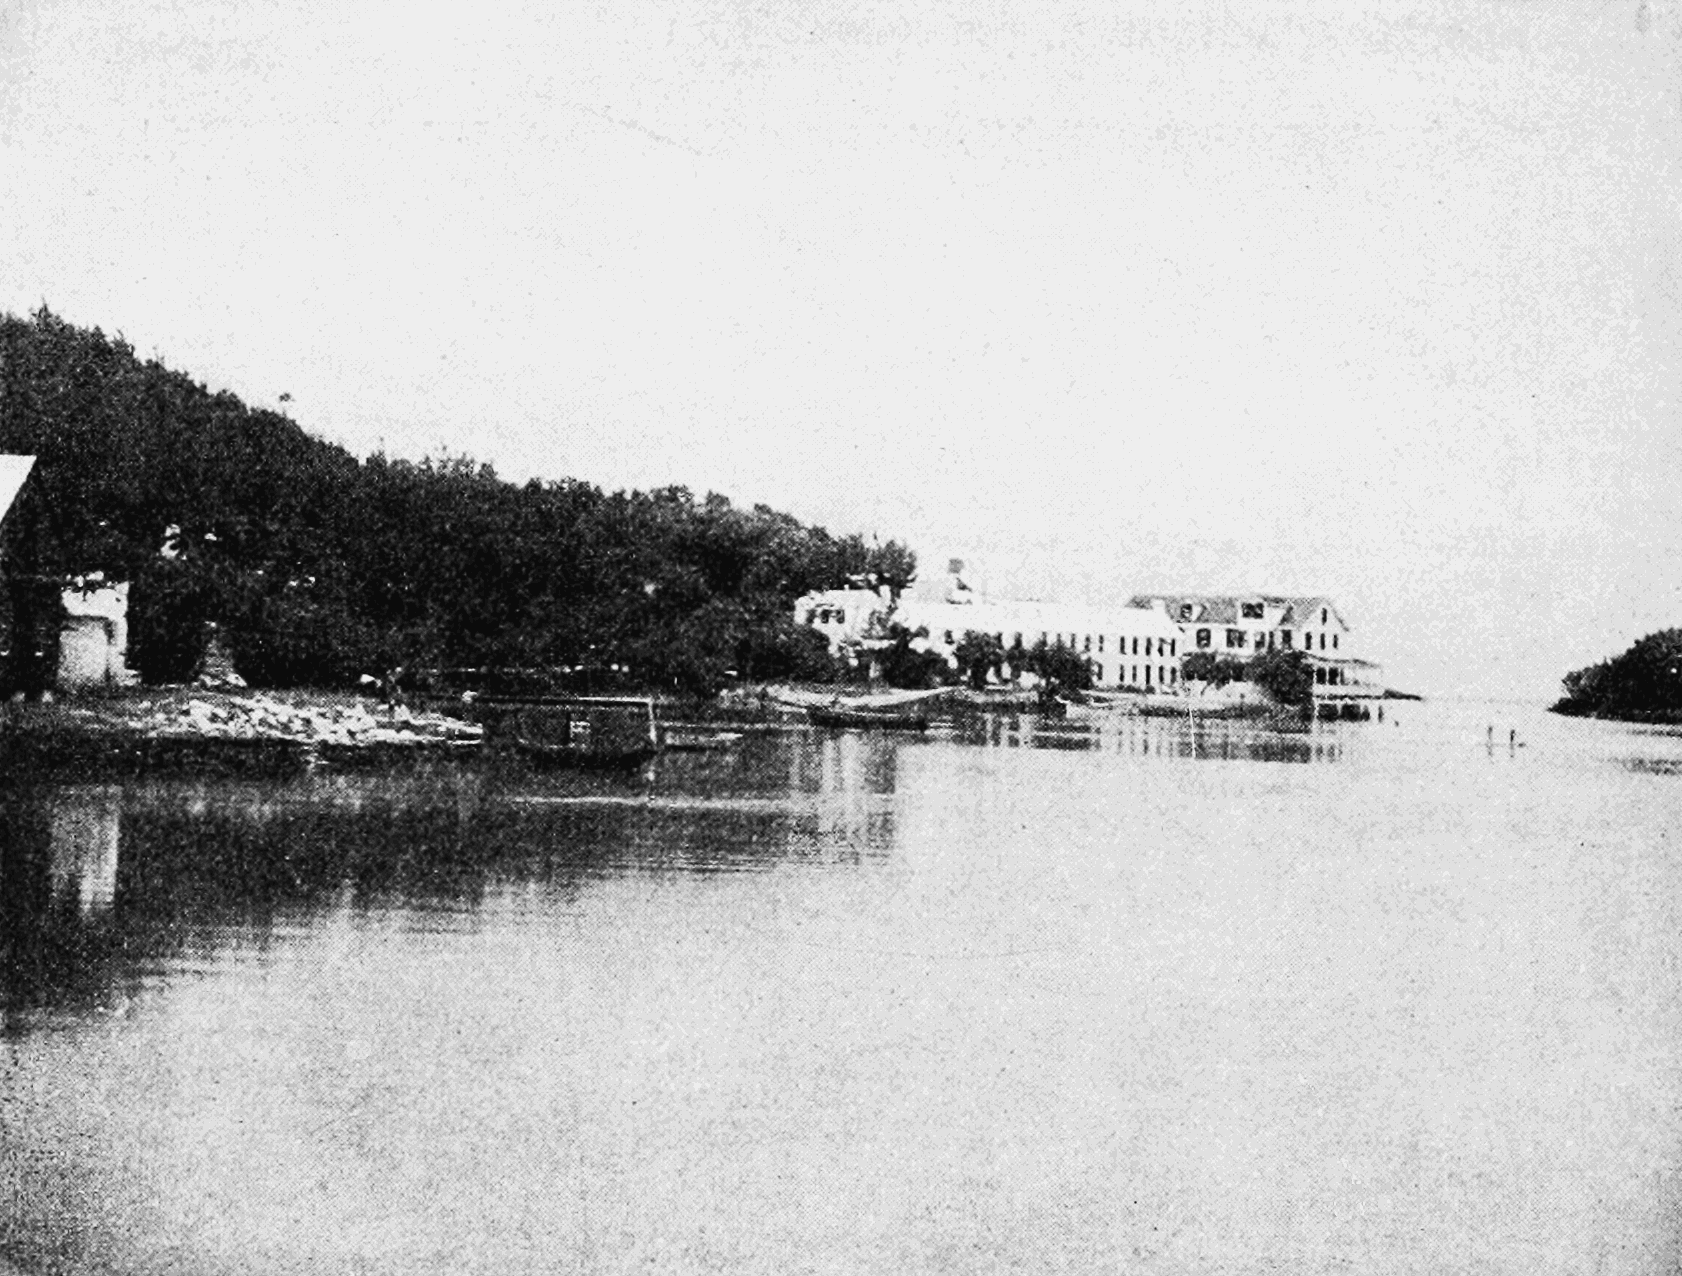 PSM V66 D562 Hotel frascati on the inlet.png